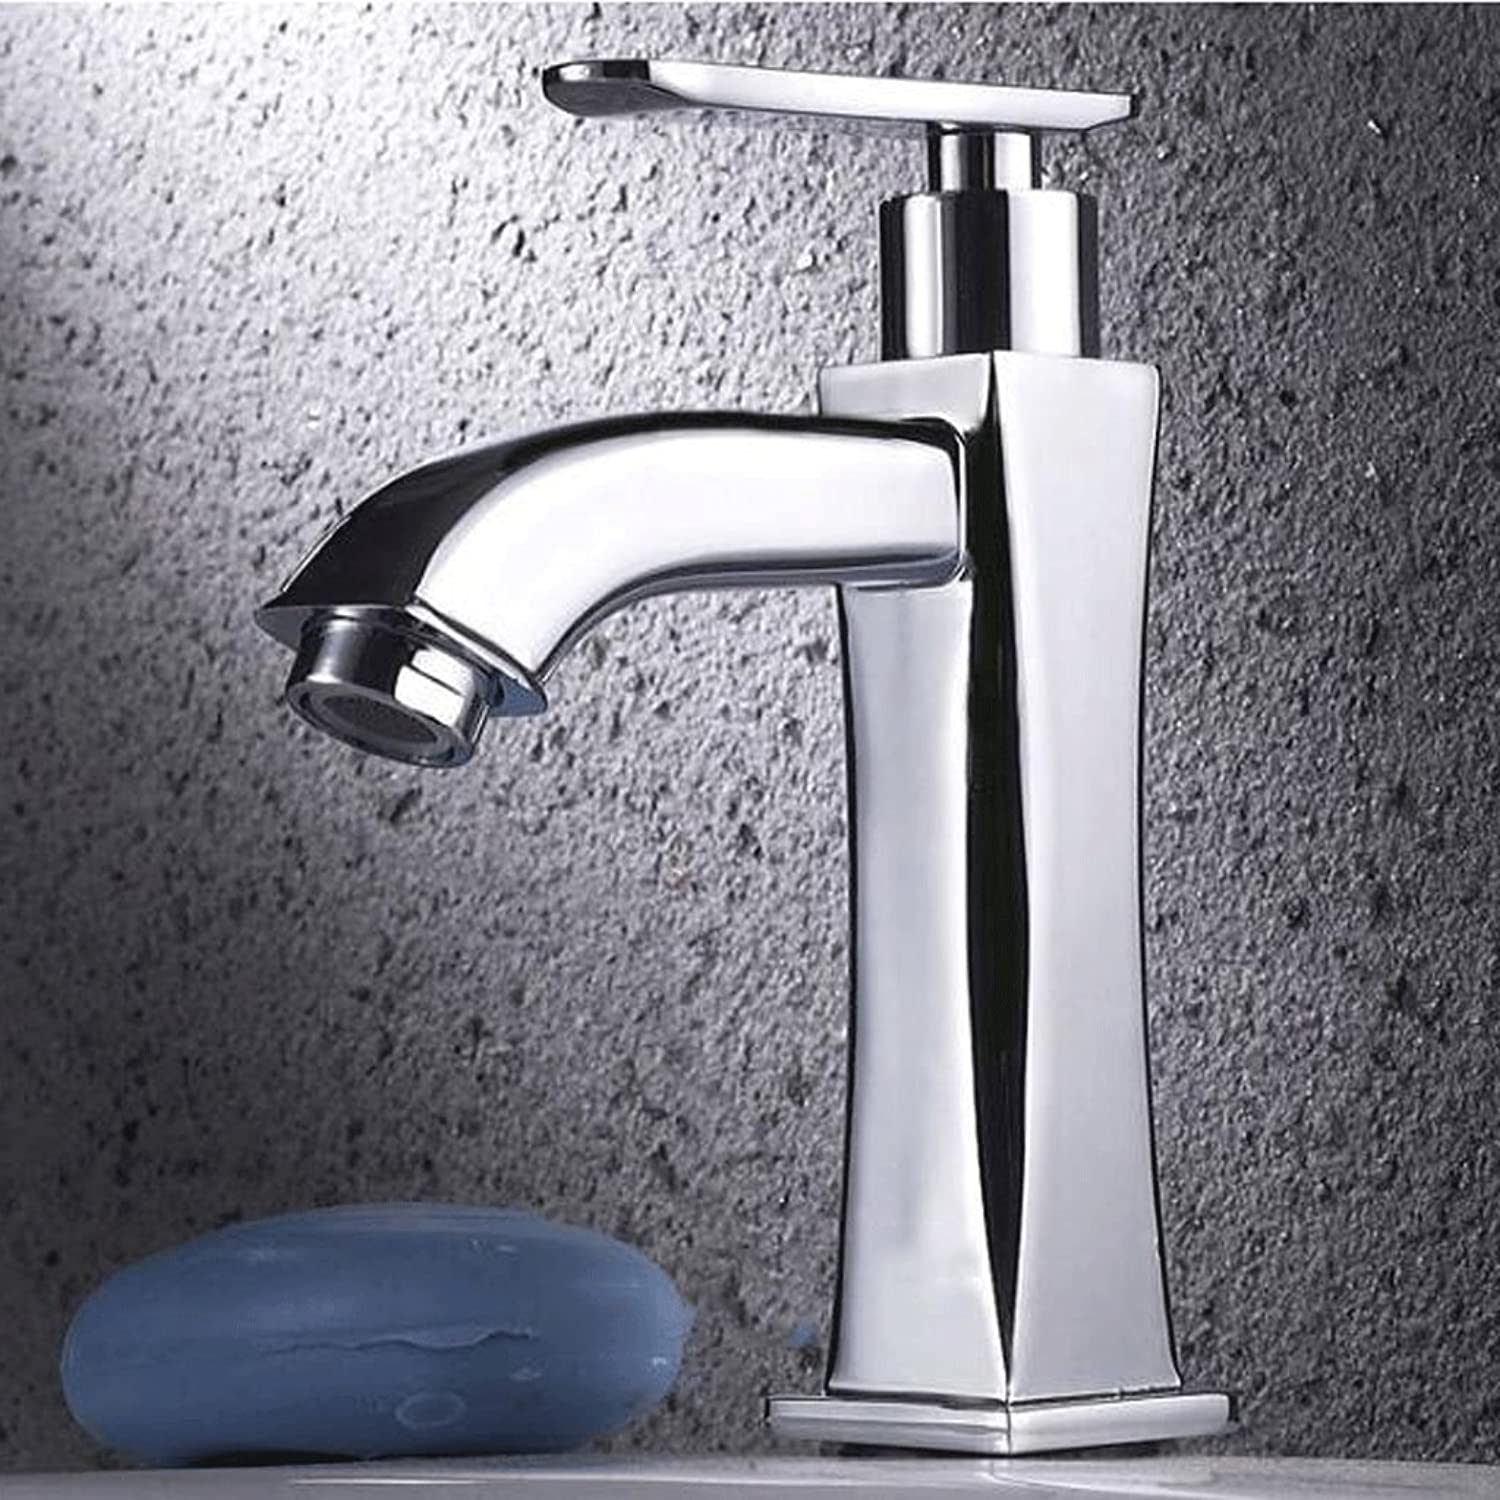 Single cold single hole greenical quick open faucet